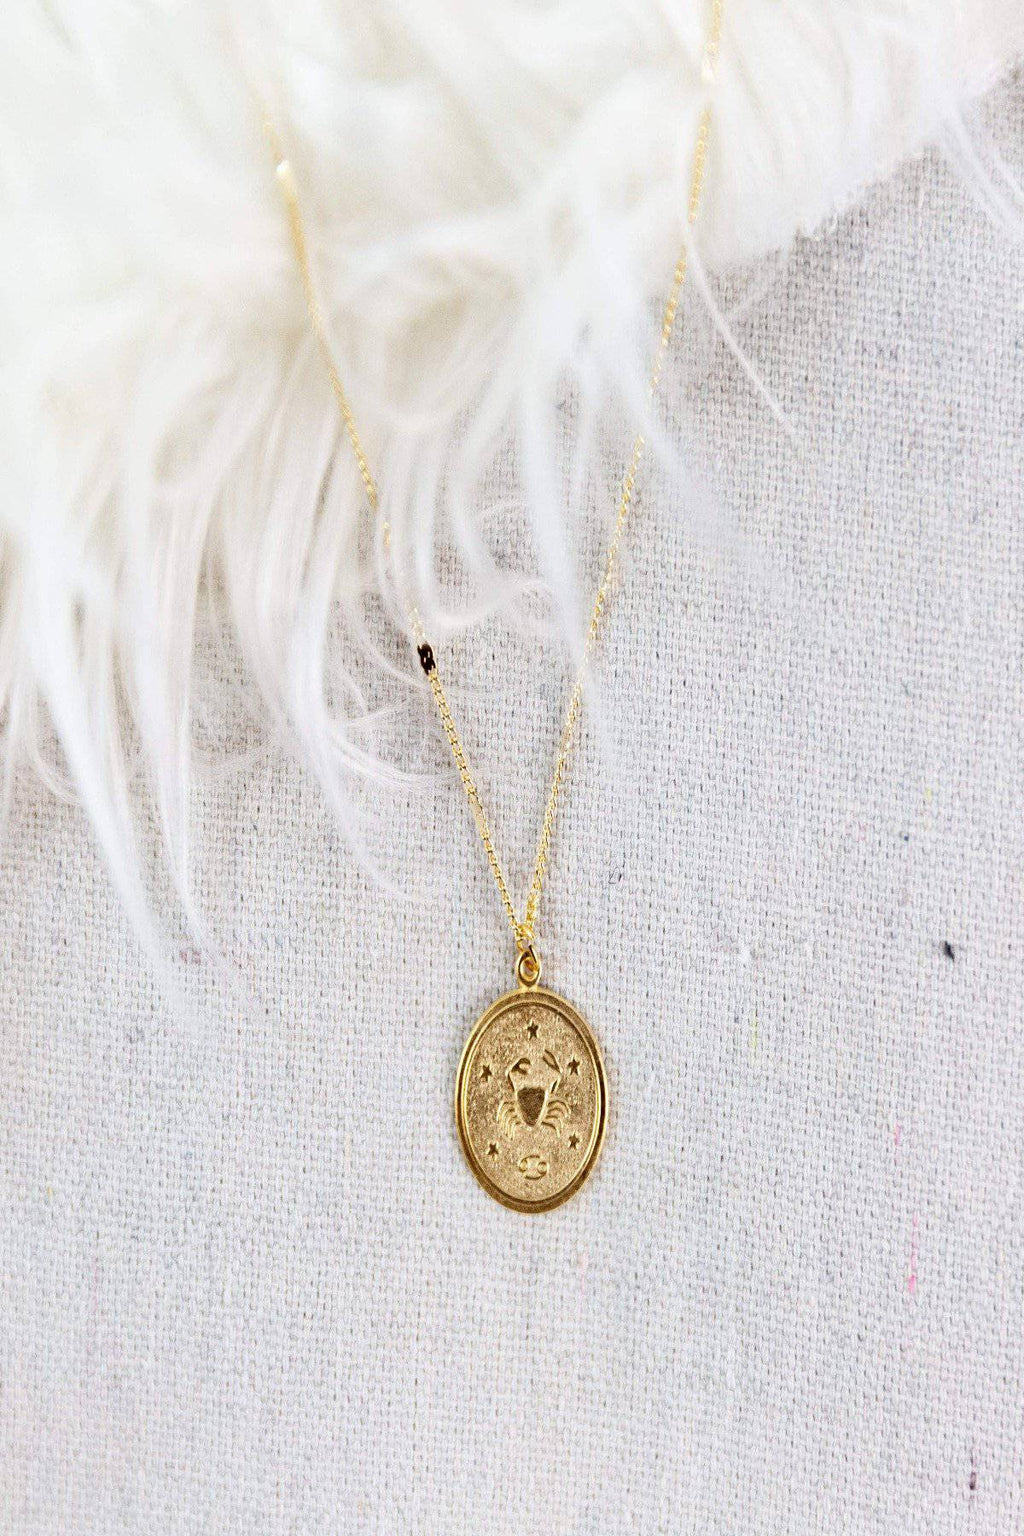 Amano Studio Zodiac Medallion Necklace - [jayden_p]